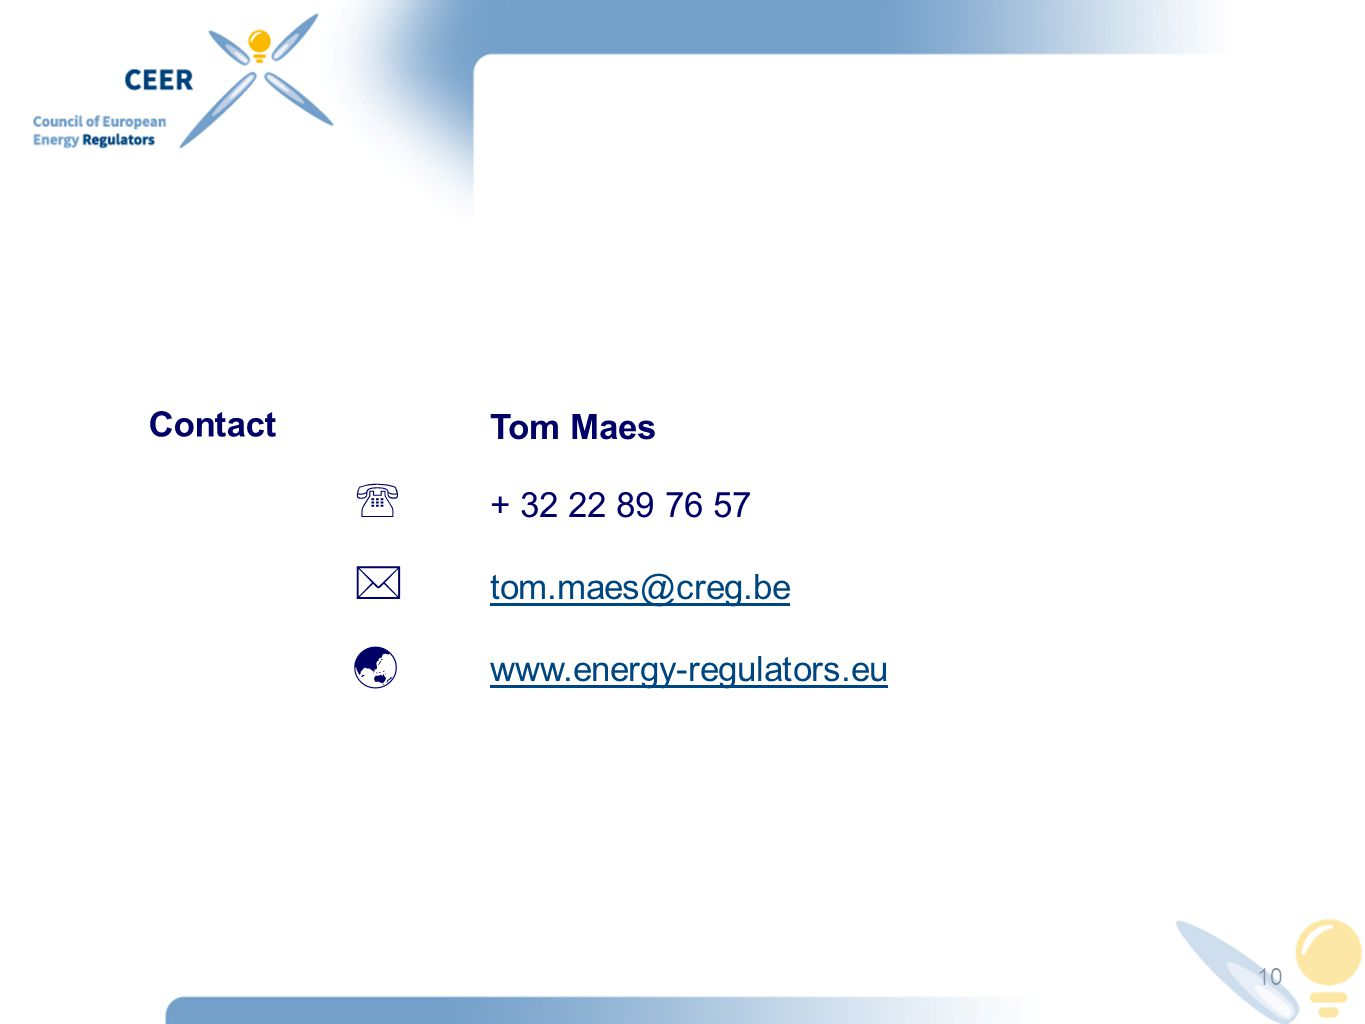 10 Tom Maes  + 32 22 89 76 57  tom.maes@creg.be tom.maes@creg.be  www.energy-regulators.eu www.energy-regulators.eu Contact